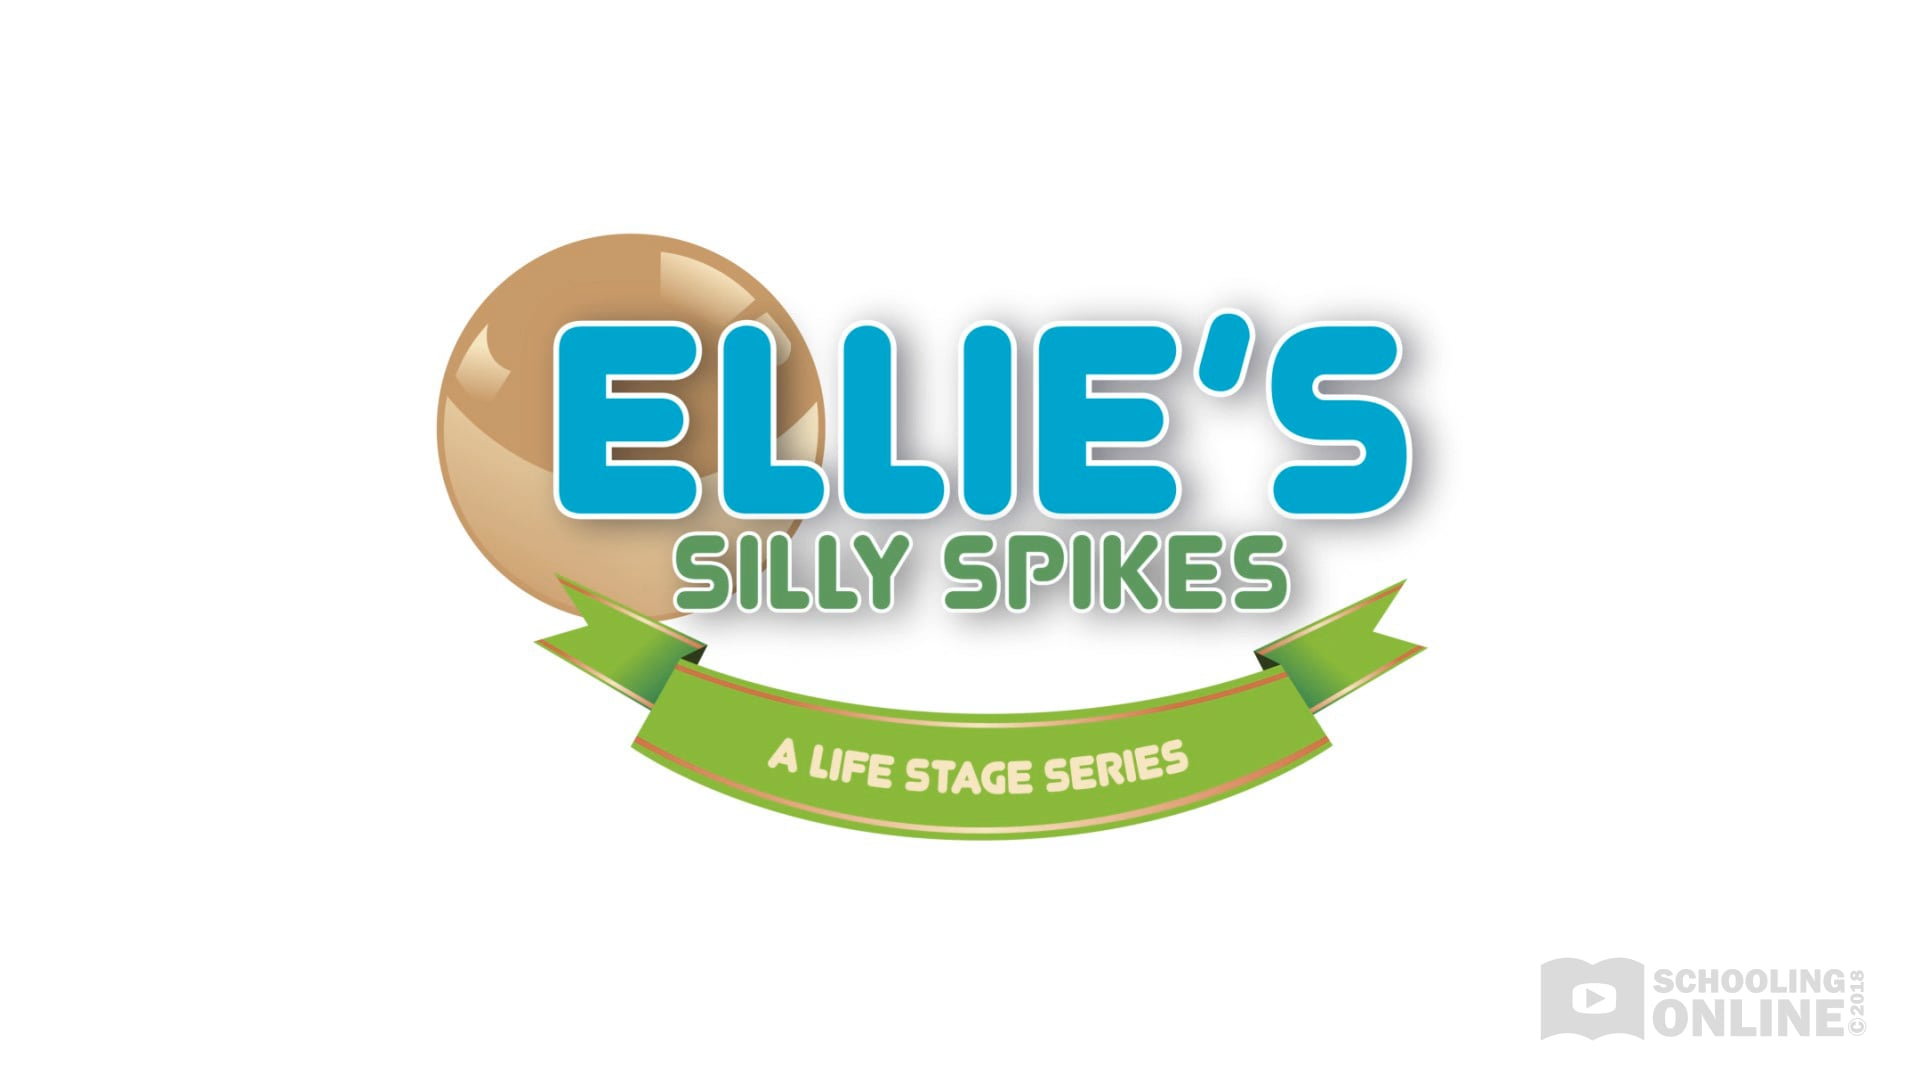 Ellie's Silly Spikes - The Life Stage Series